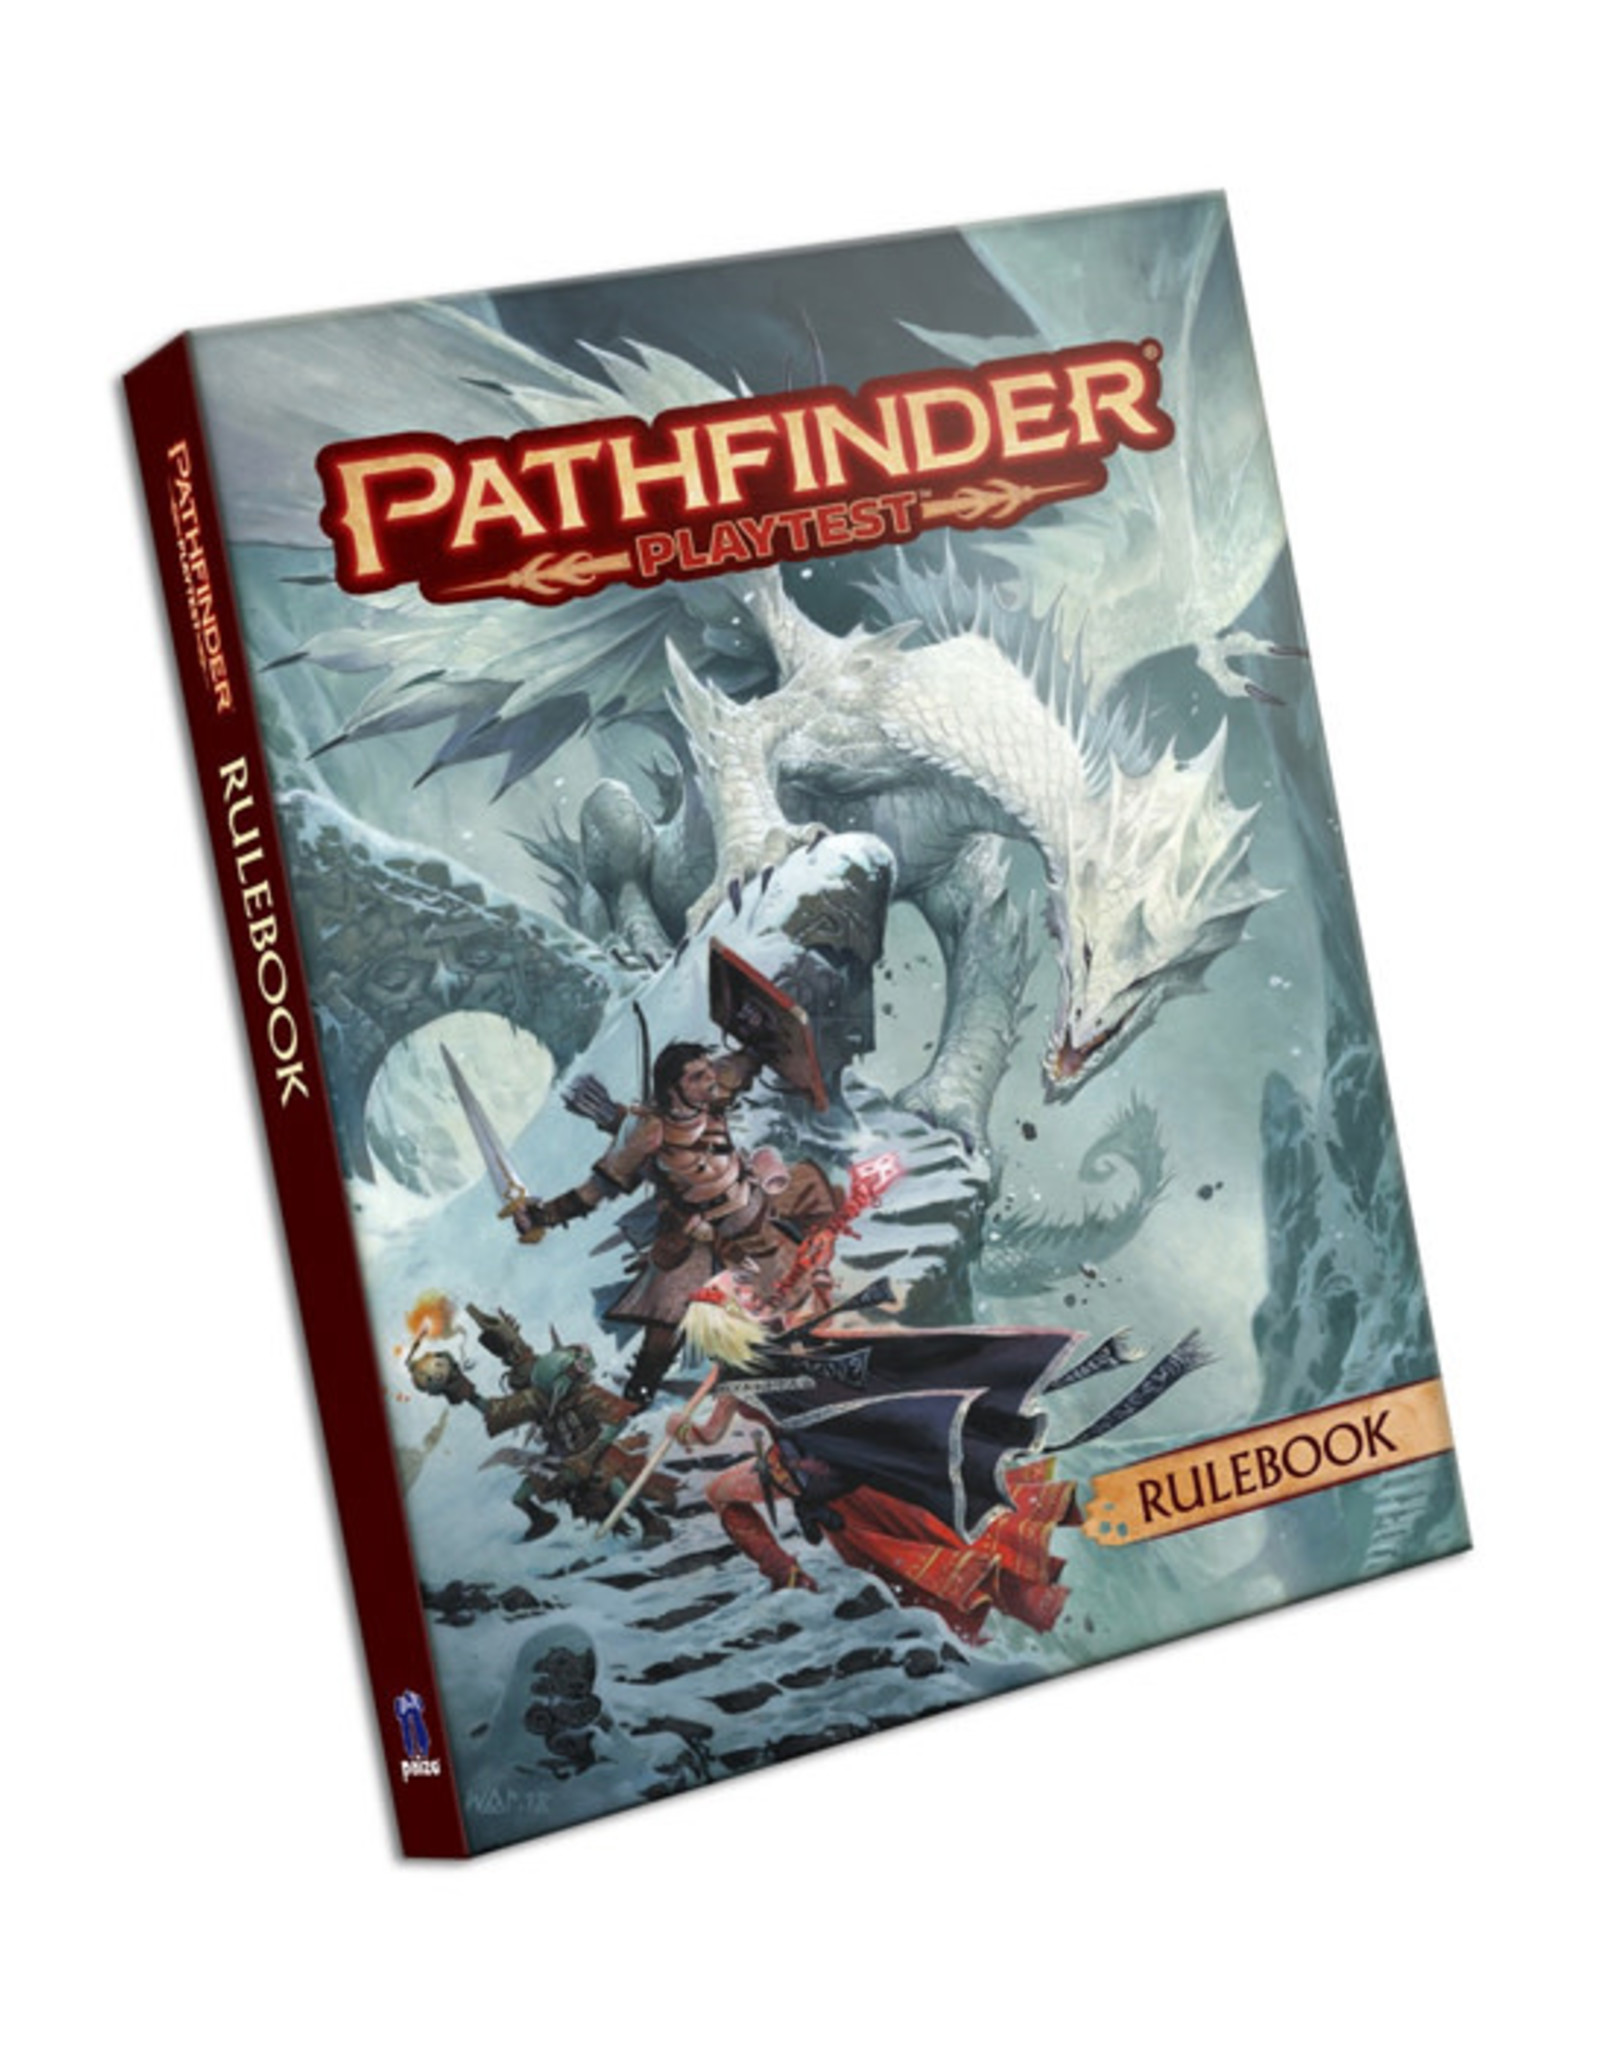 Pathfinder Pathfinder: 2nd Edition - Playtest - Rulebook (Softcover)